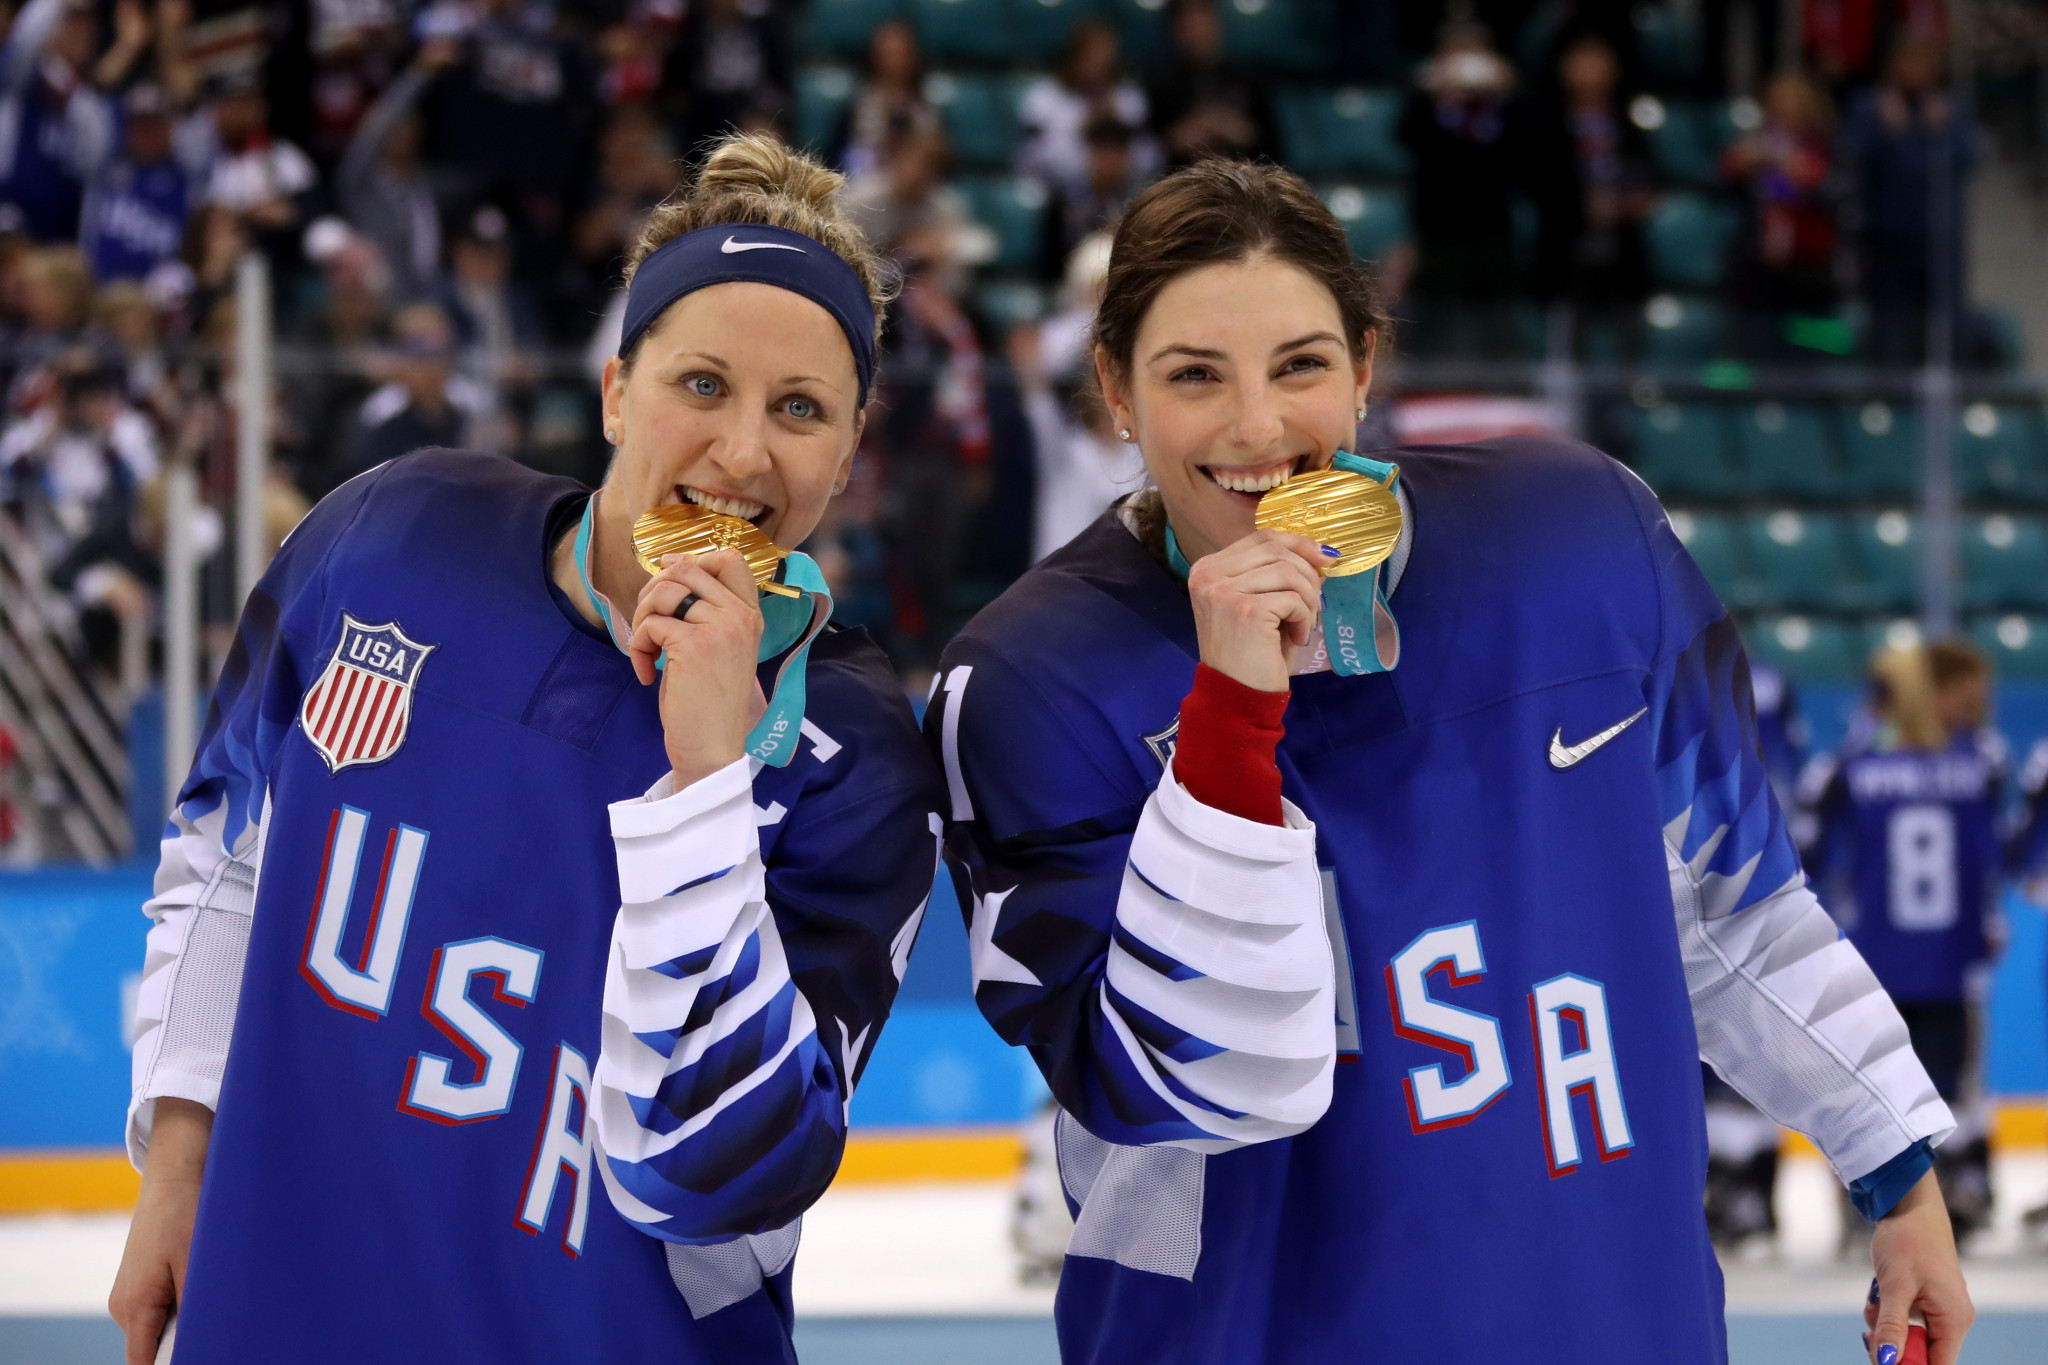 Joel Johnson will lead the women's ice hockey team, who won gold at Pyeongchang 2018 ©Getty Images